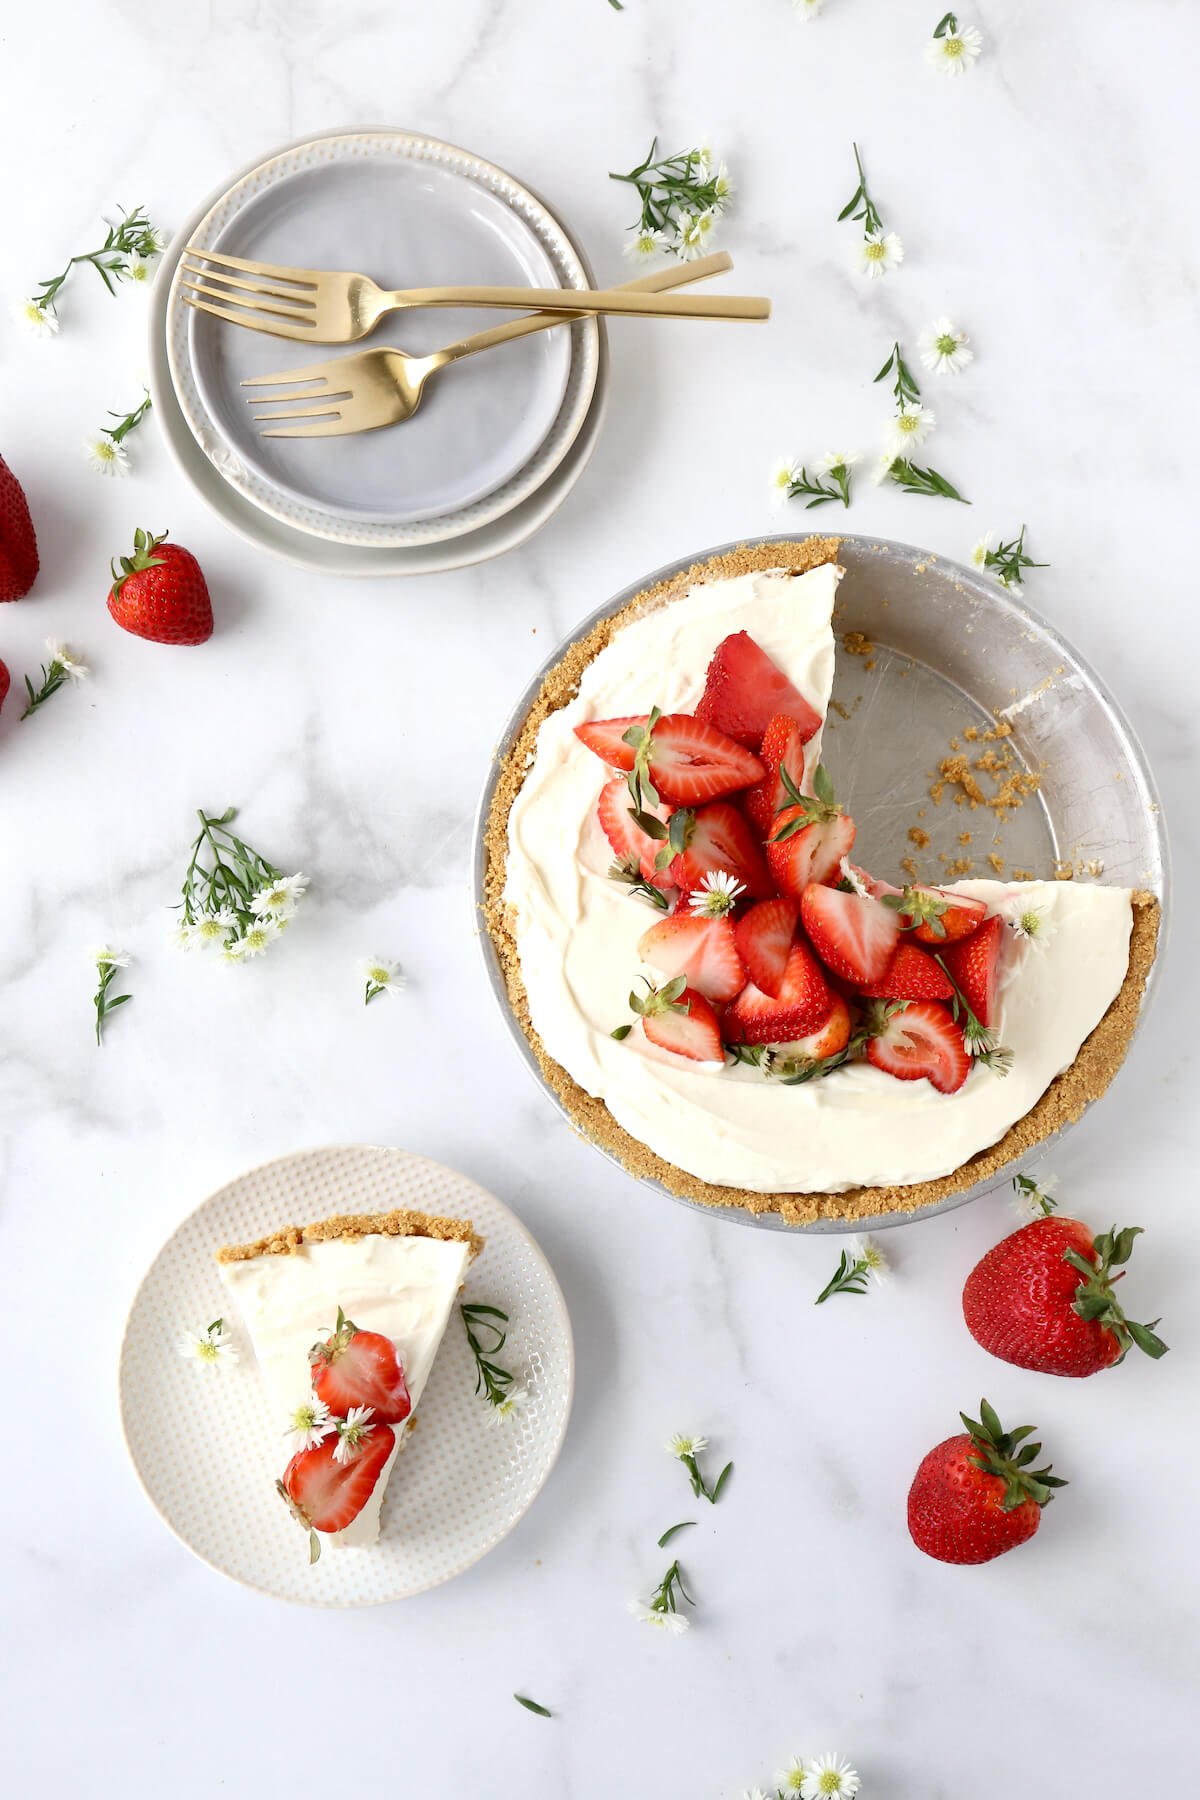 a whole pie with a slice cut out and a slice of pie on a plate surrounded by fresh flowers.